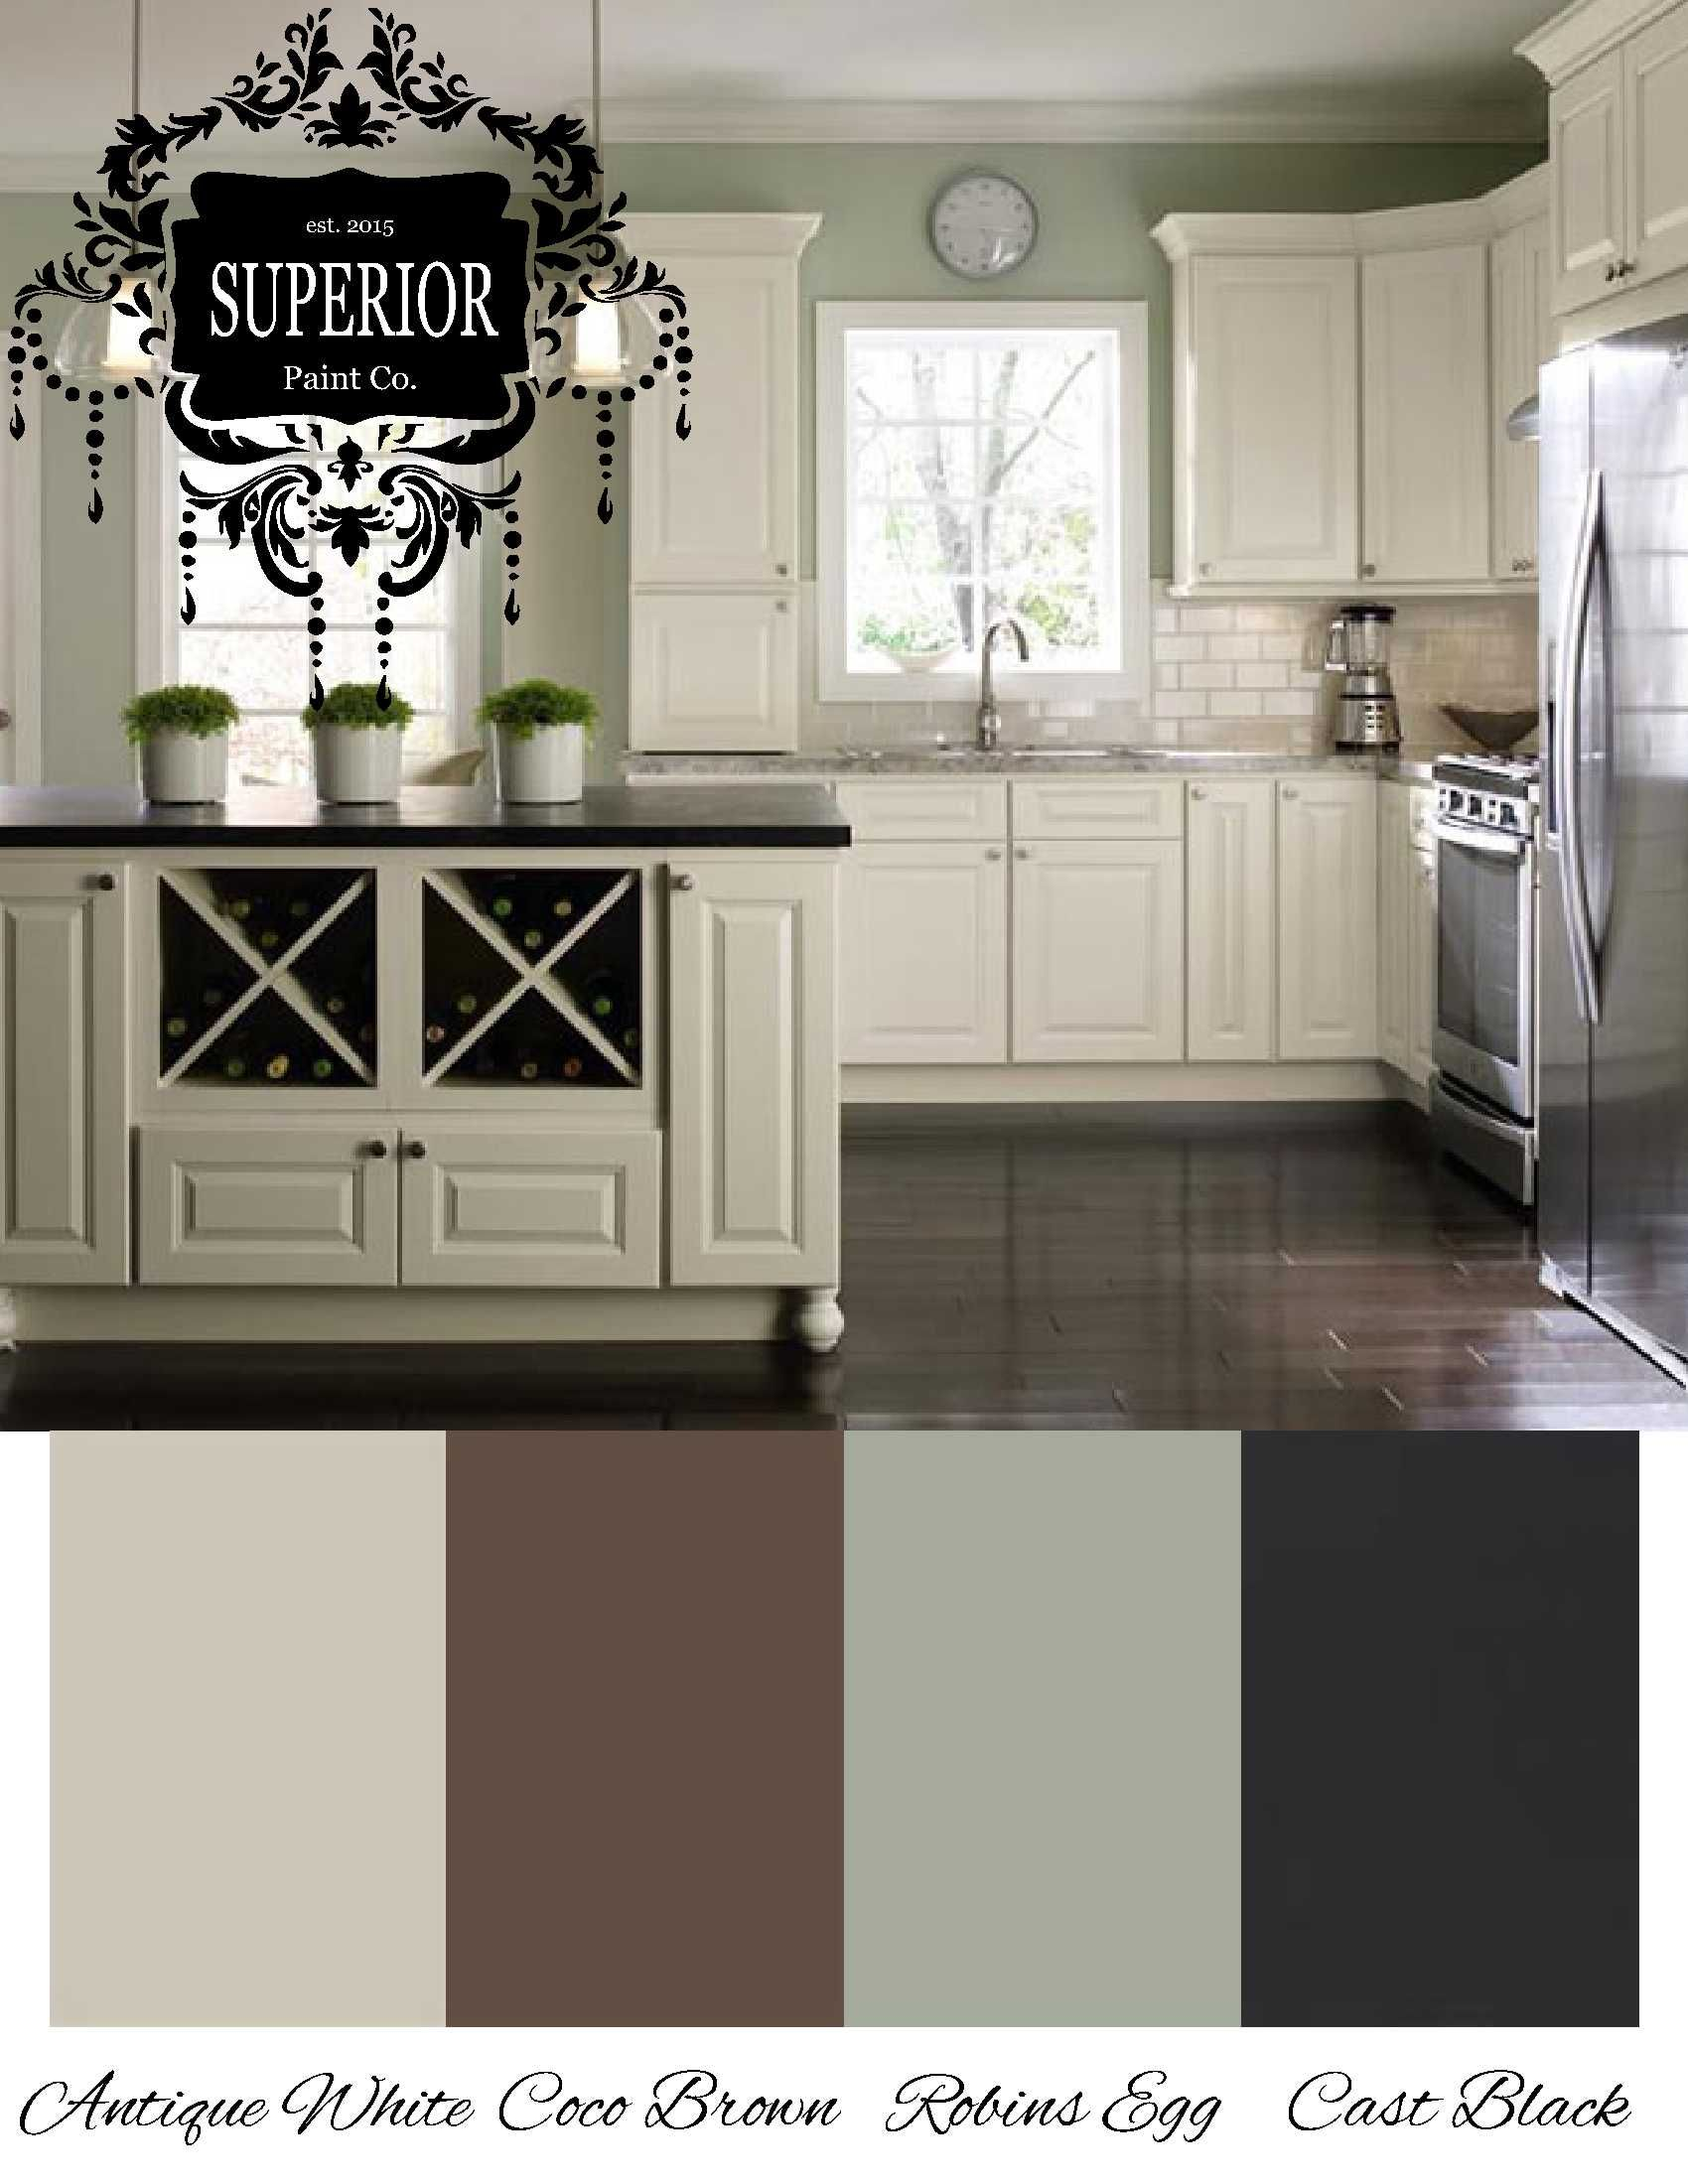 Inspiration for your next Kitchen   Green kitchen walls, New ...